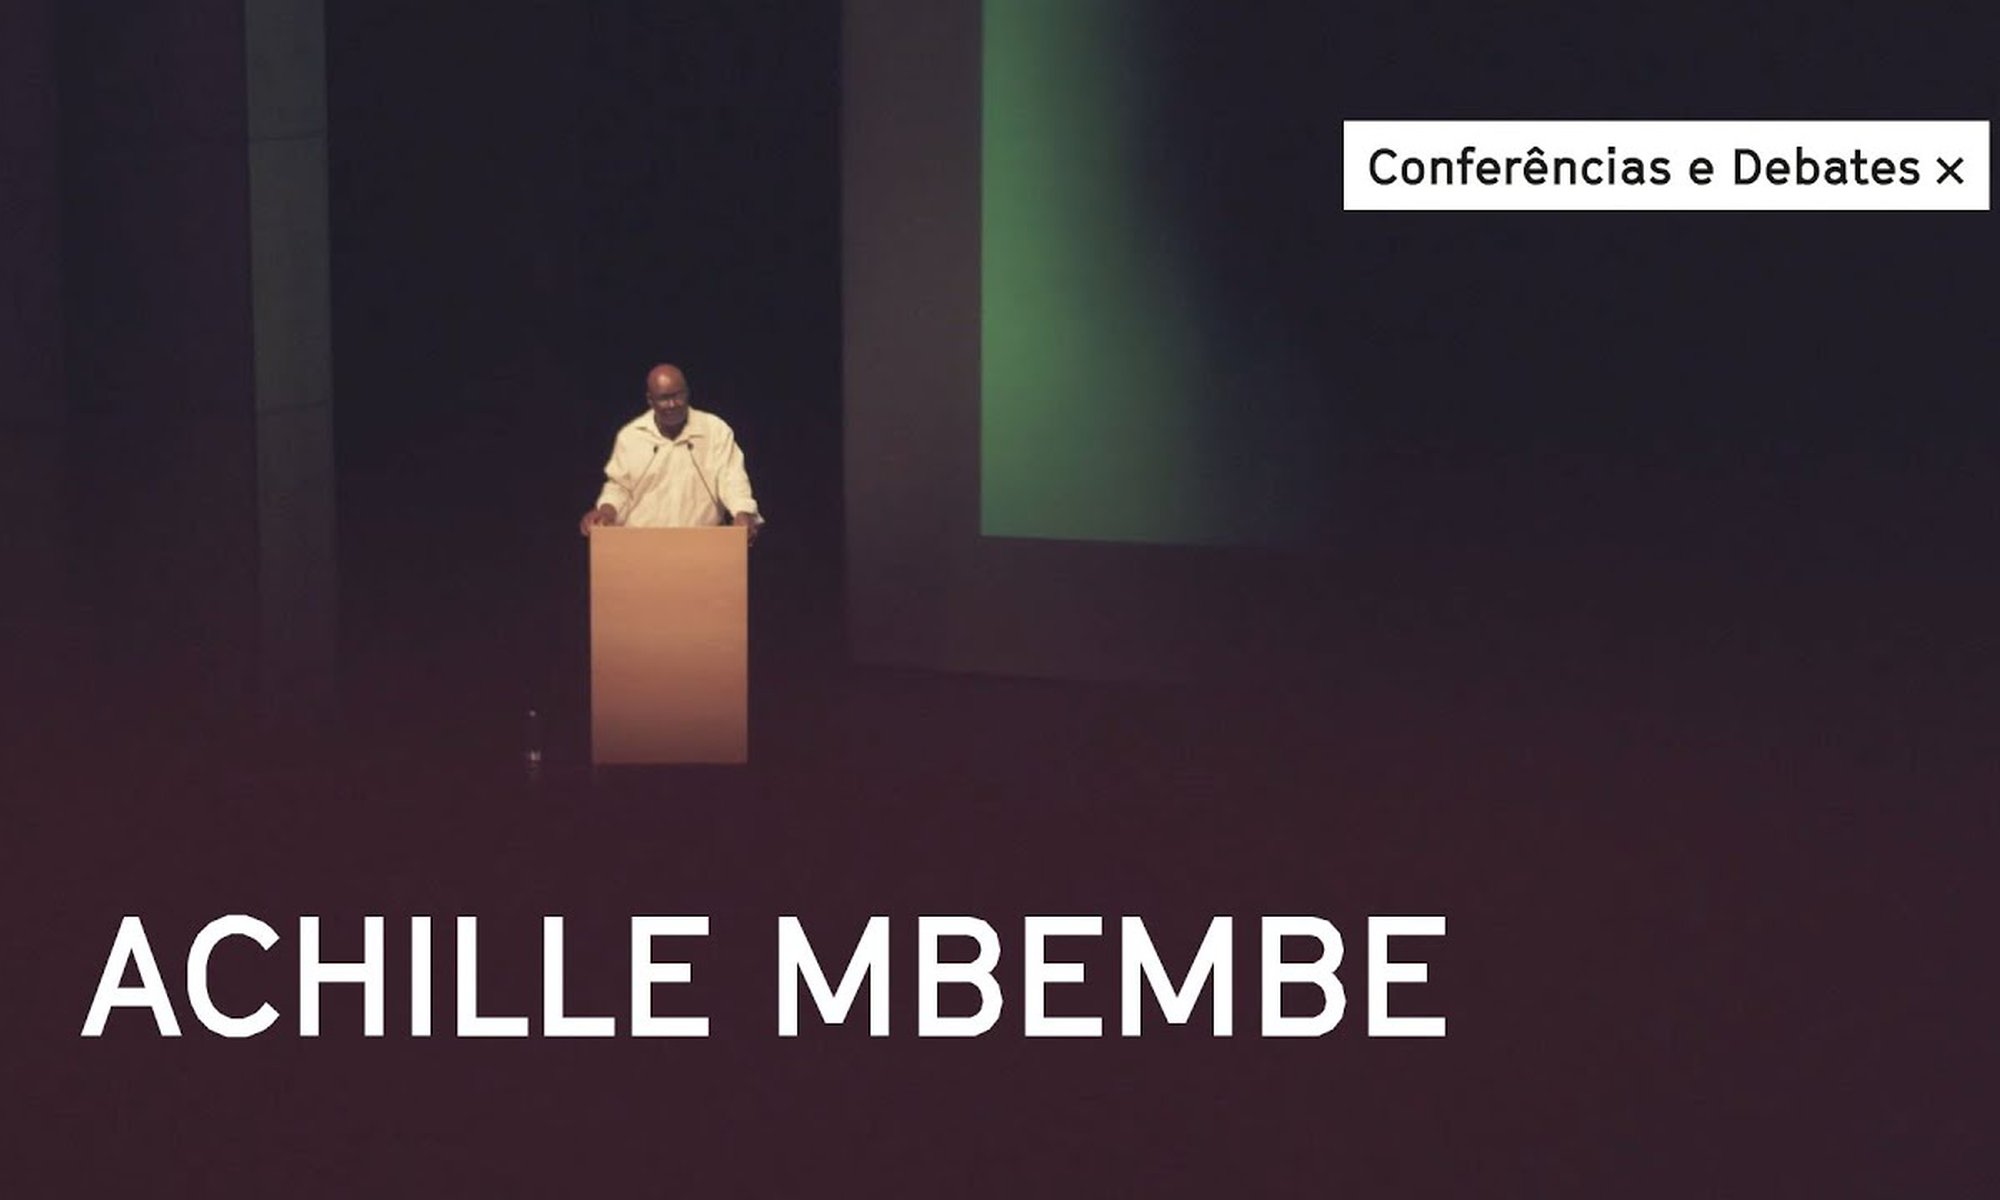 Achille Mbembe Podcast - conference at Culturgest